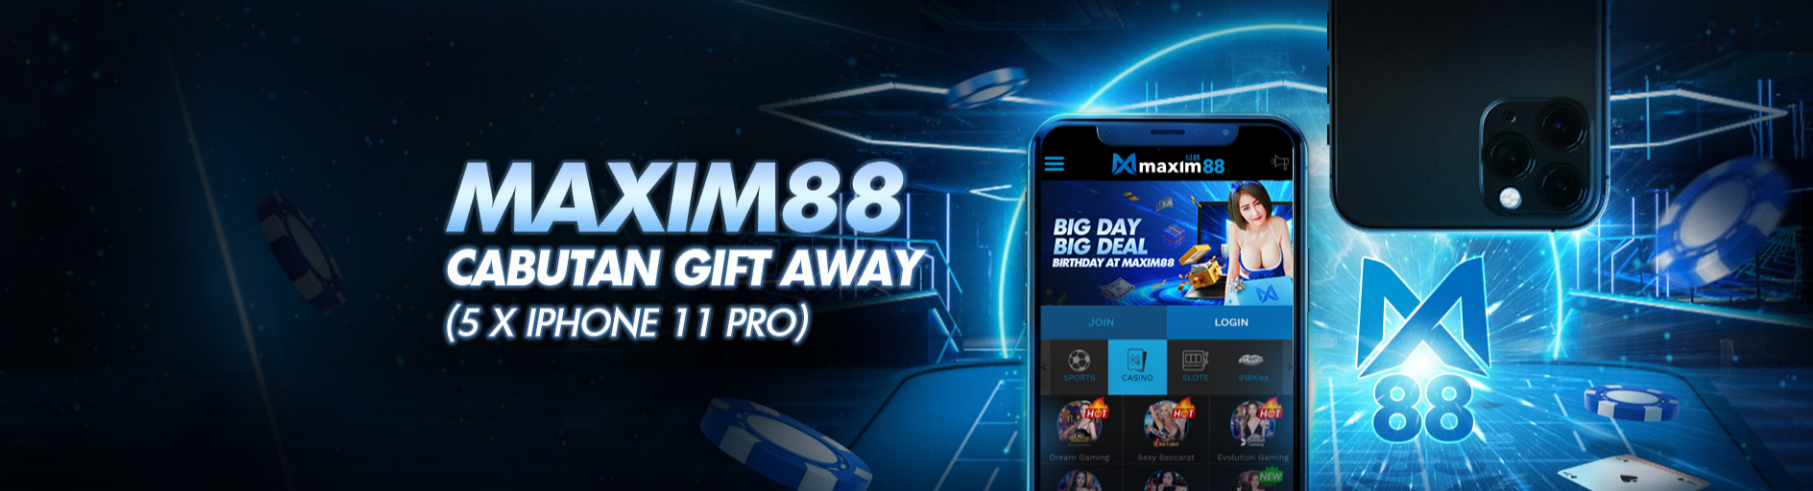 FREE IPHONE 11 FOR MAXIM88